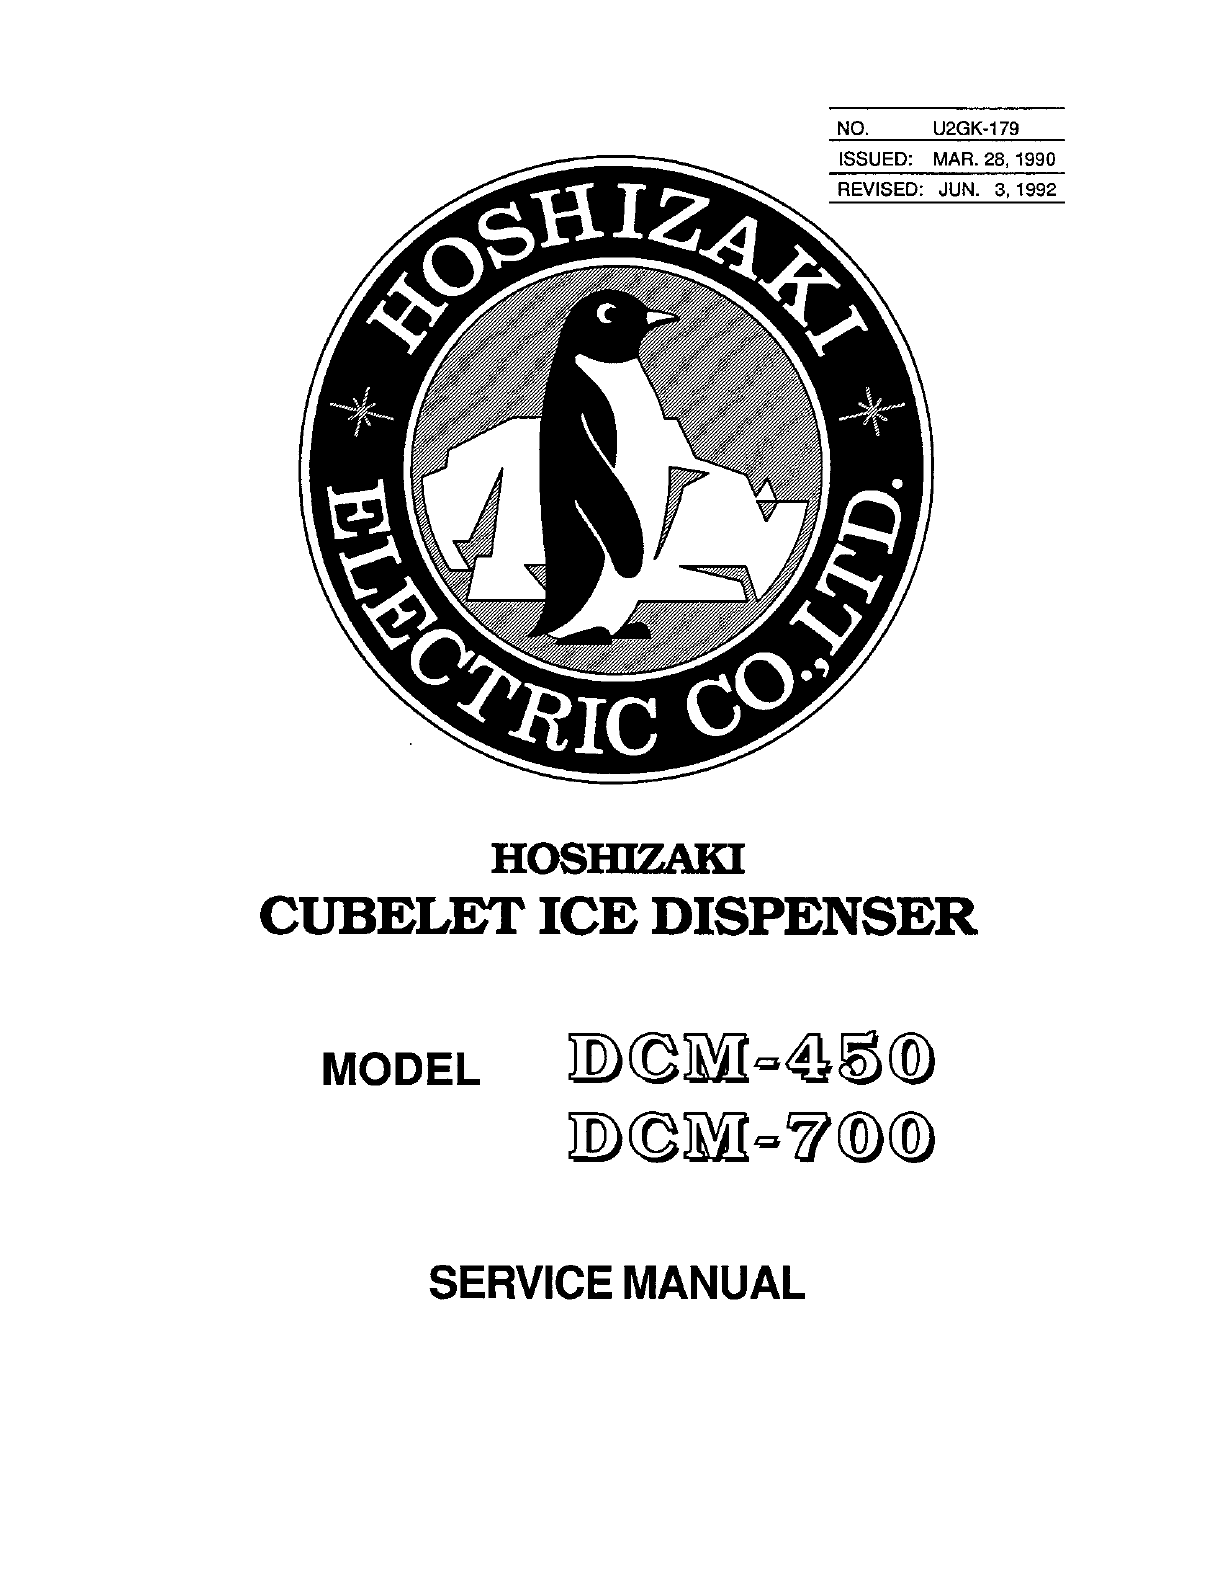 hoshizaki ice maker dcm 700 user guide manualsonline com rh kitchen manualsonline com hoshizaki am-50bae owners manual hoshizaki ice machine owner's manual